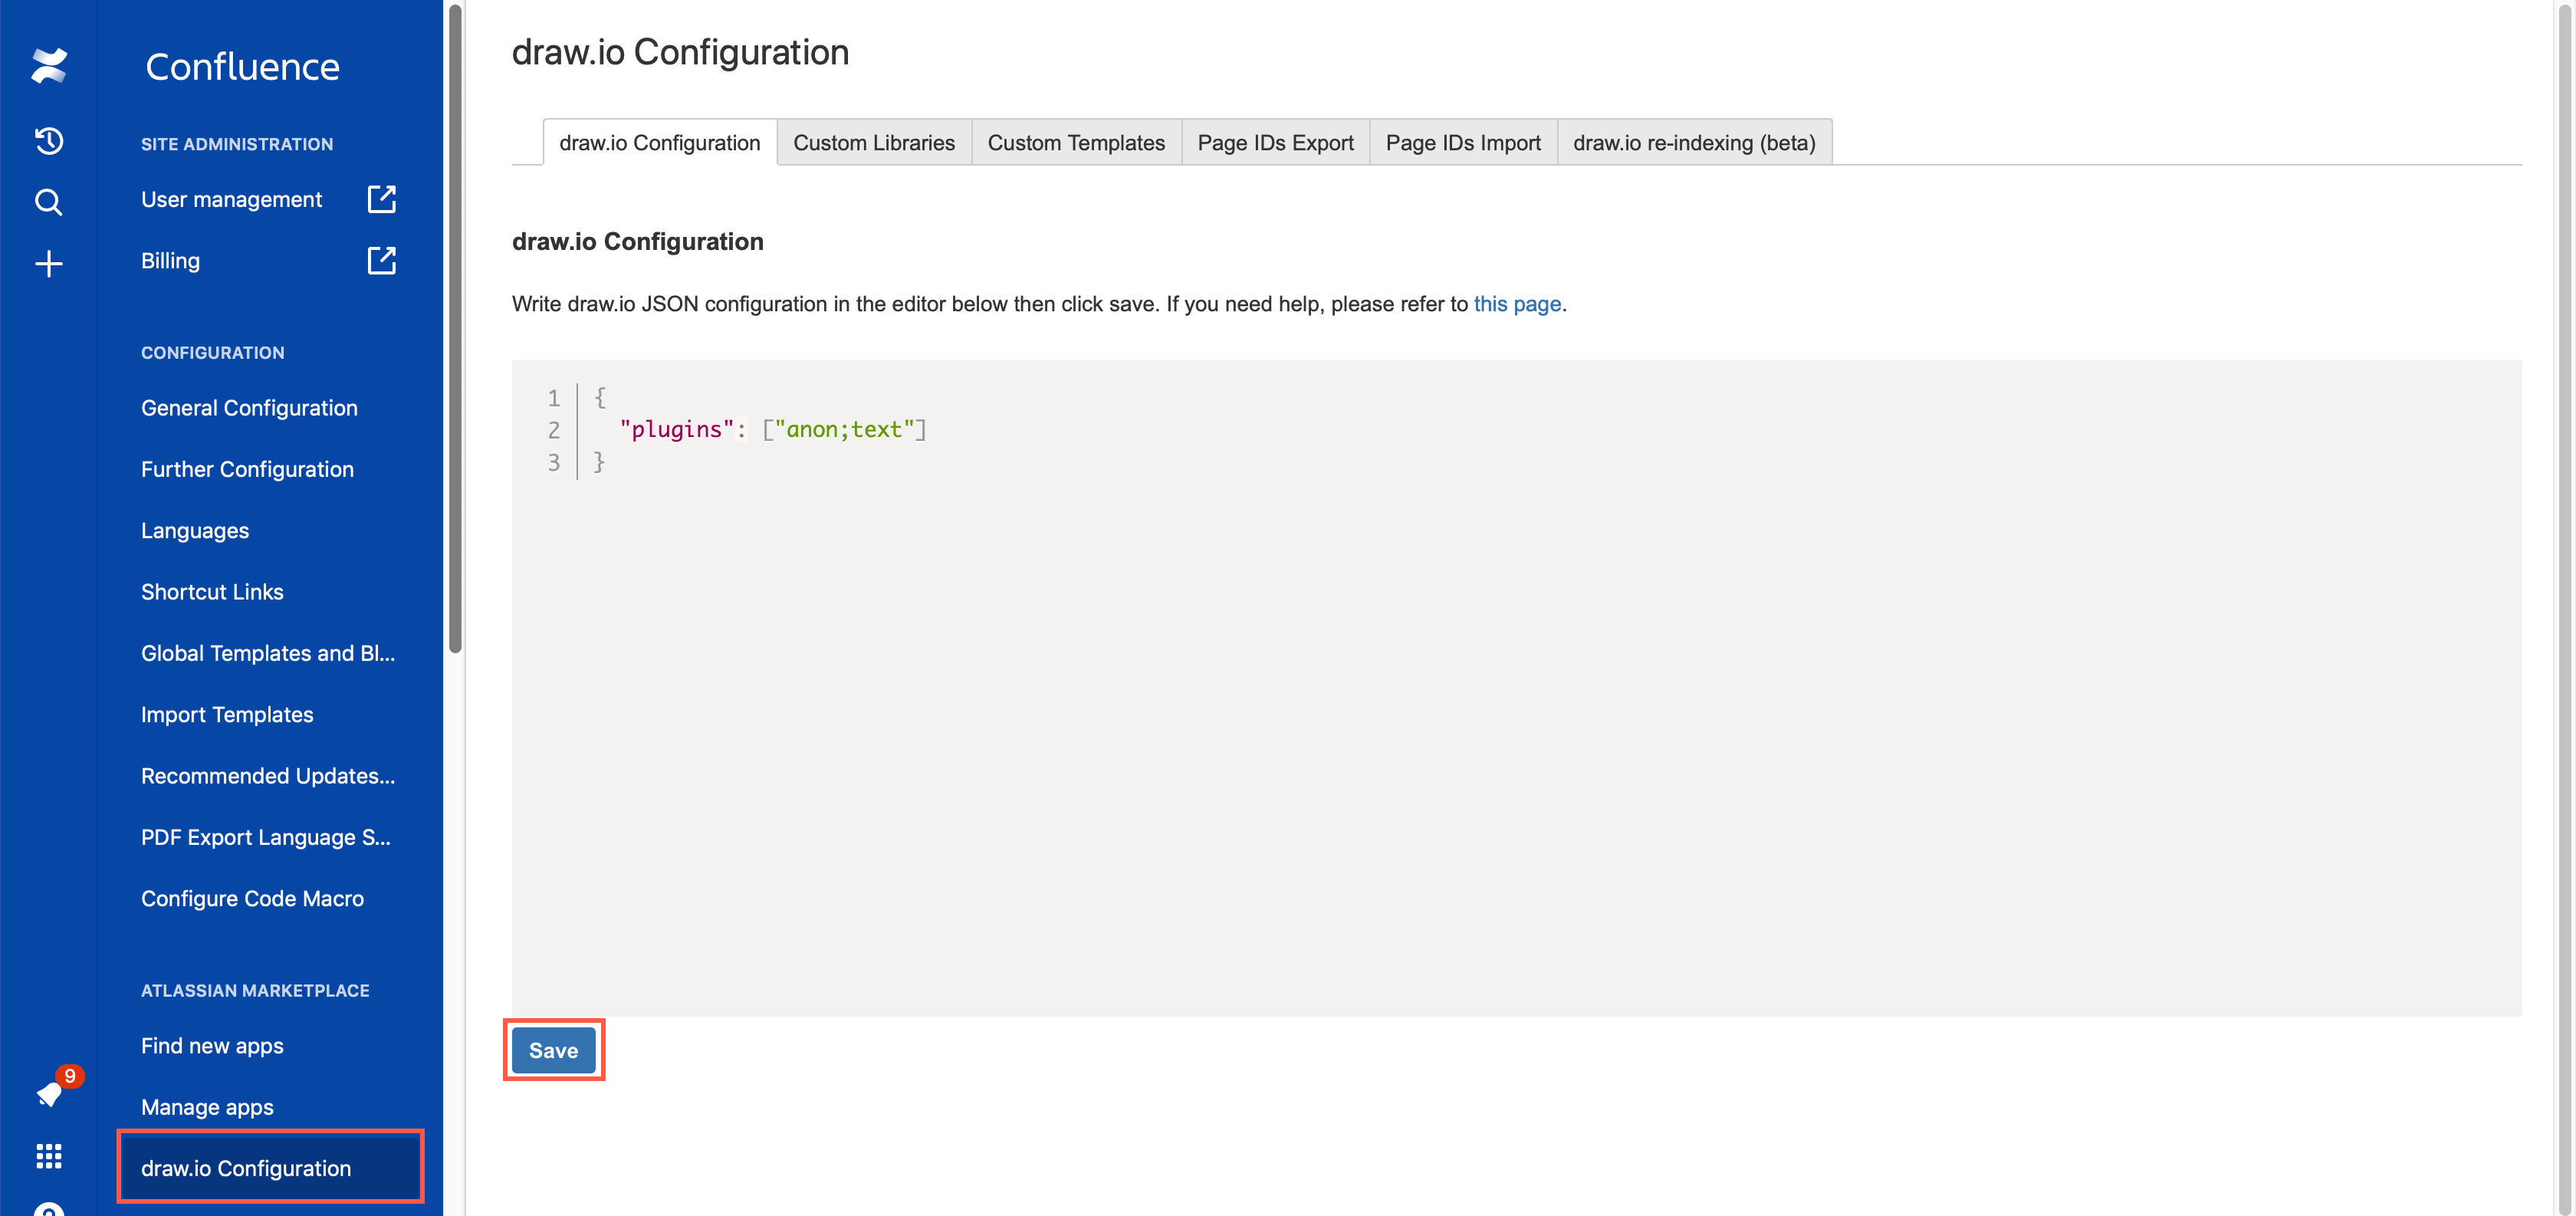 Add the list of plugins to the draw.io Configuration in your Confluence Settings